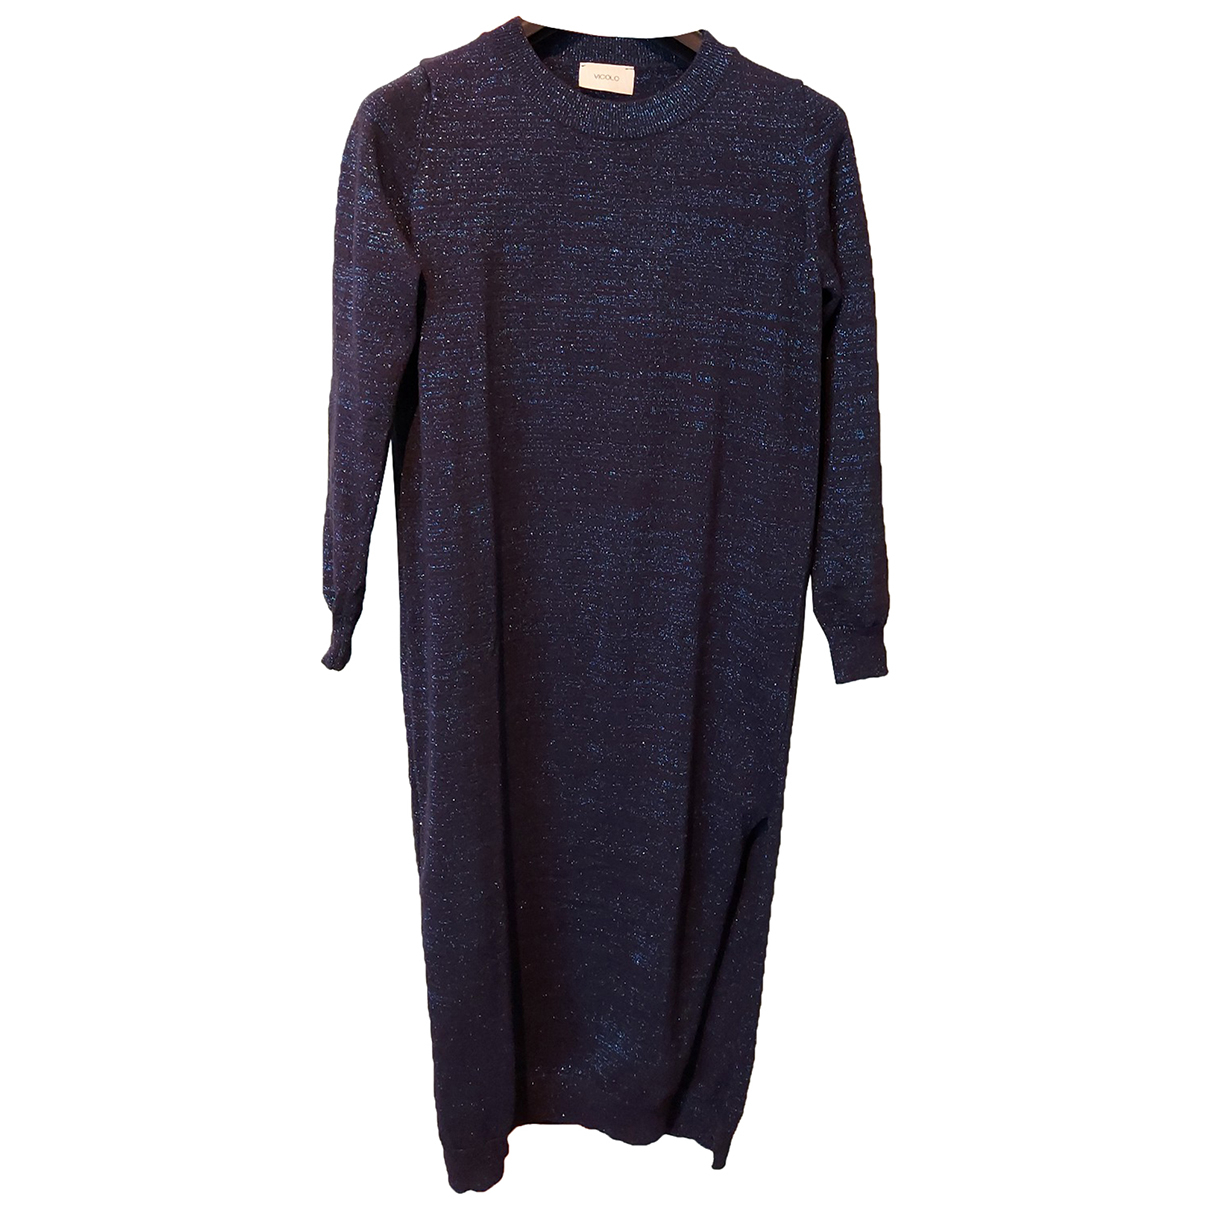 Vicolo N Blue dress for Women One Size FR